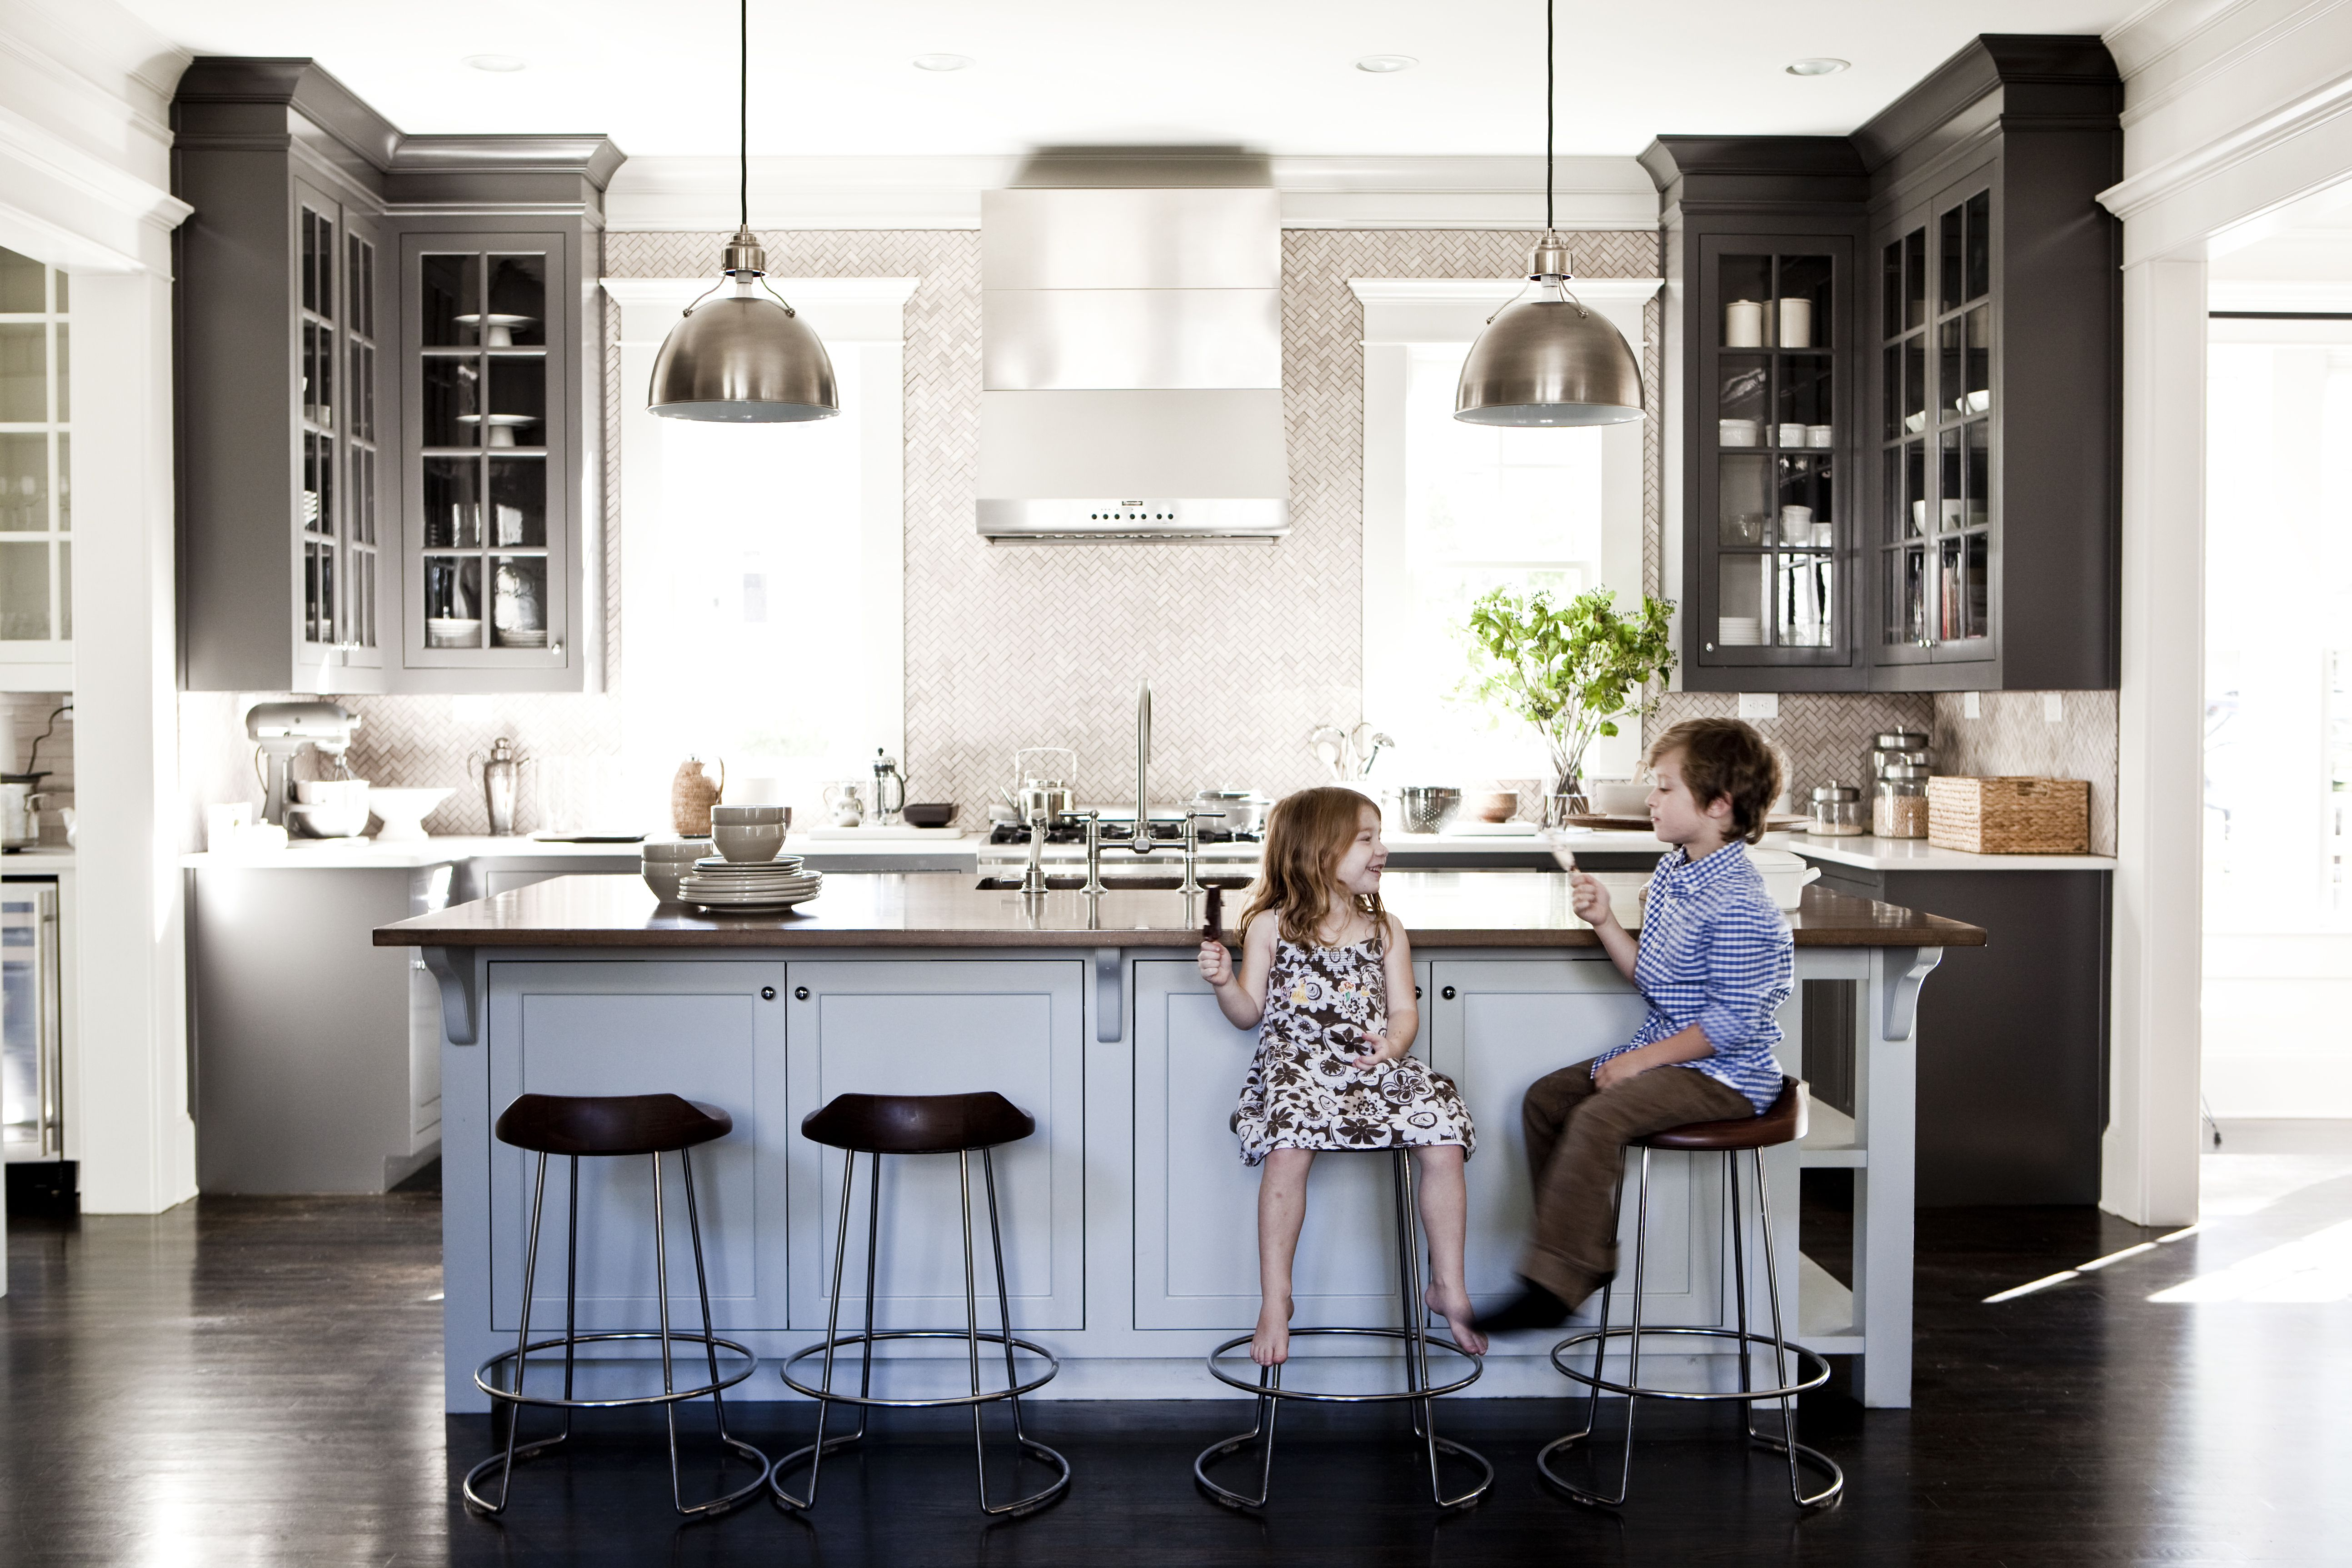 The 8 Best Kitchen Lights For 2019 Wiring In Home Hardwiring Of Low Voltage Undercabinet